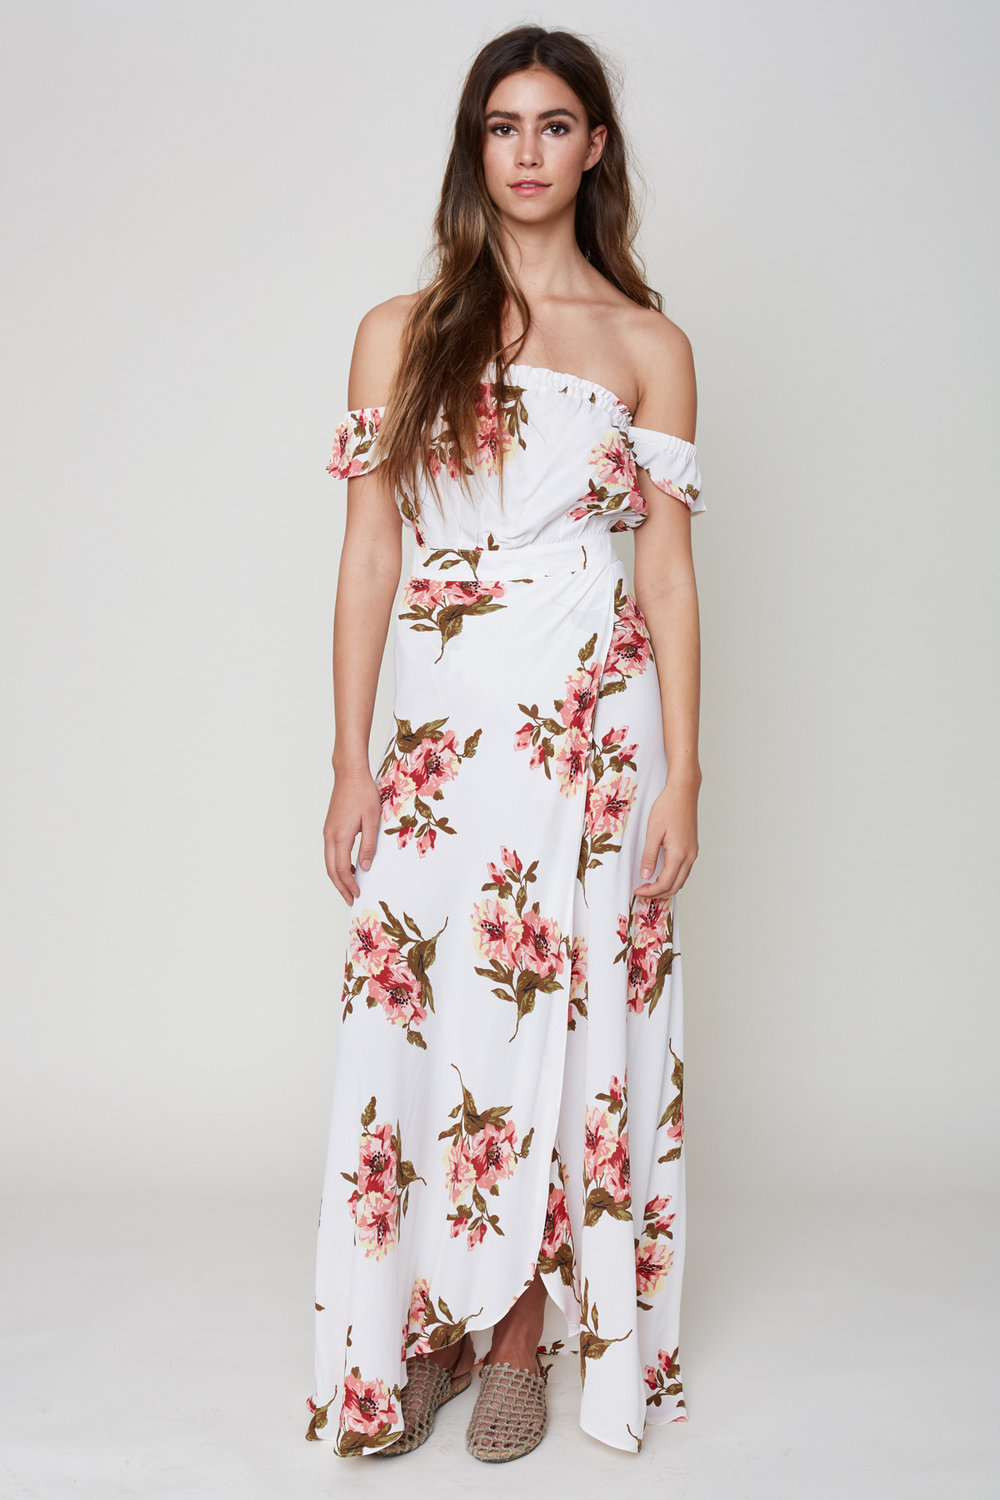 BELLA MAXI on flynn skye -